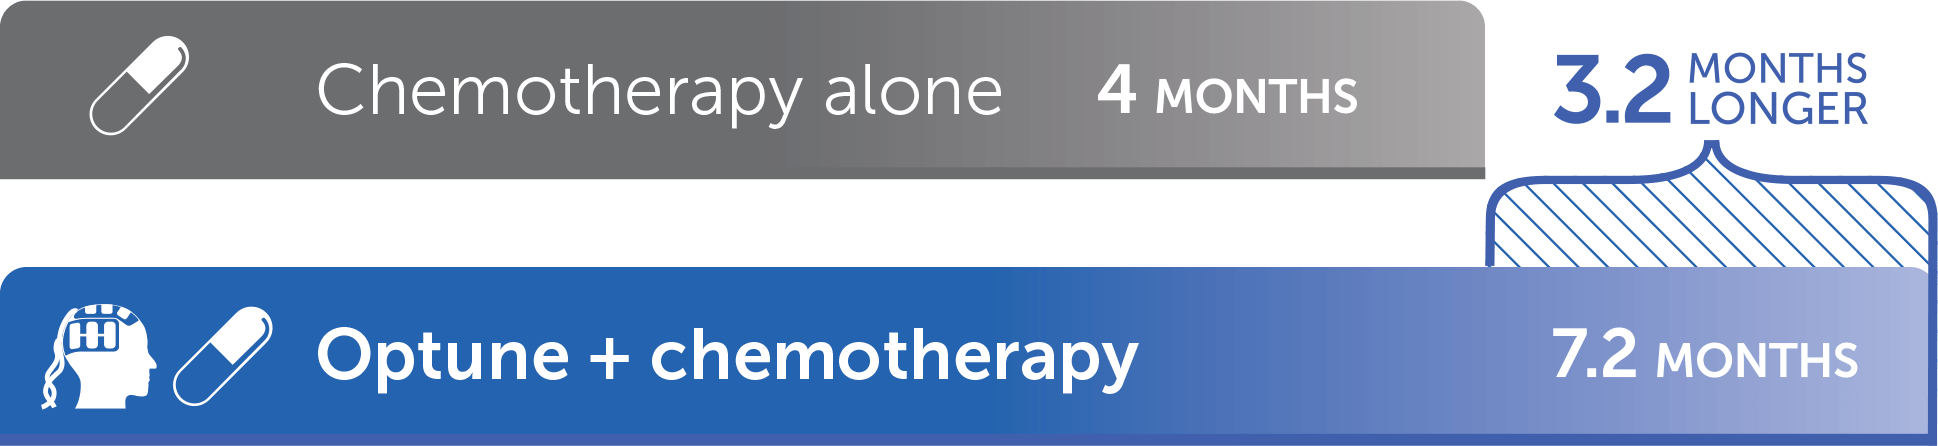 Progression-free survival of people on Optune® + chemotherapy was 3.2 months longer than that of people on chemotherapy alone